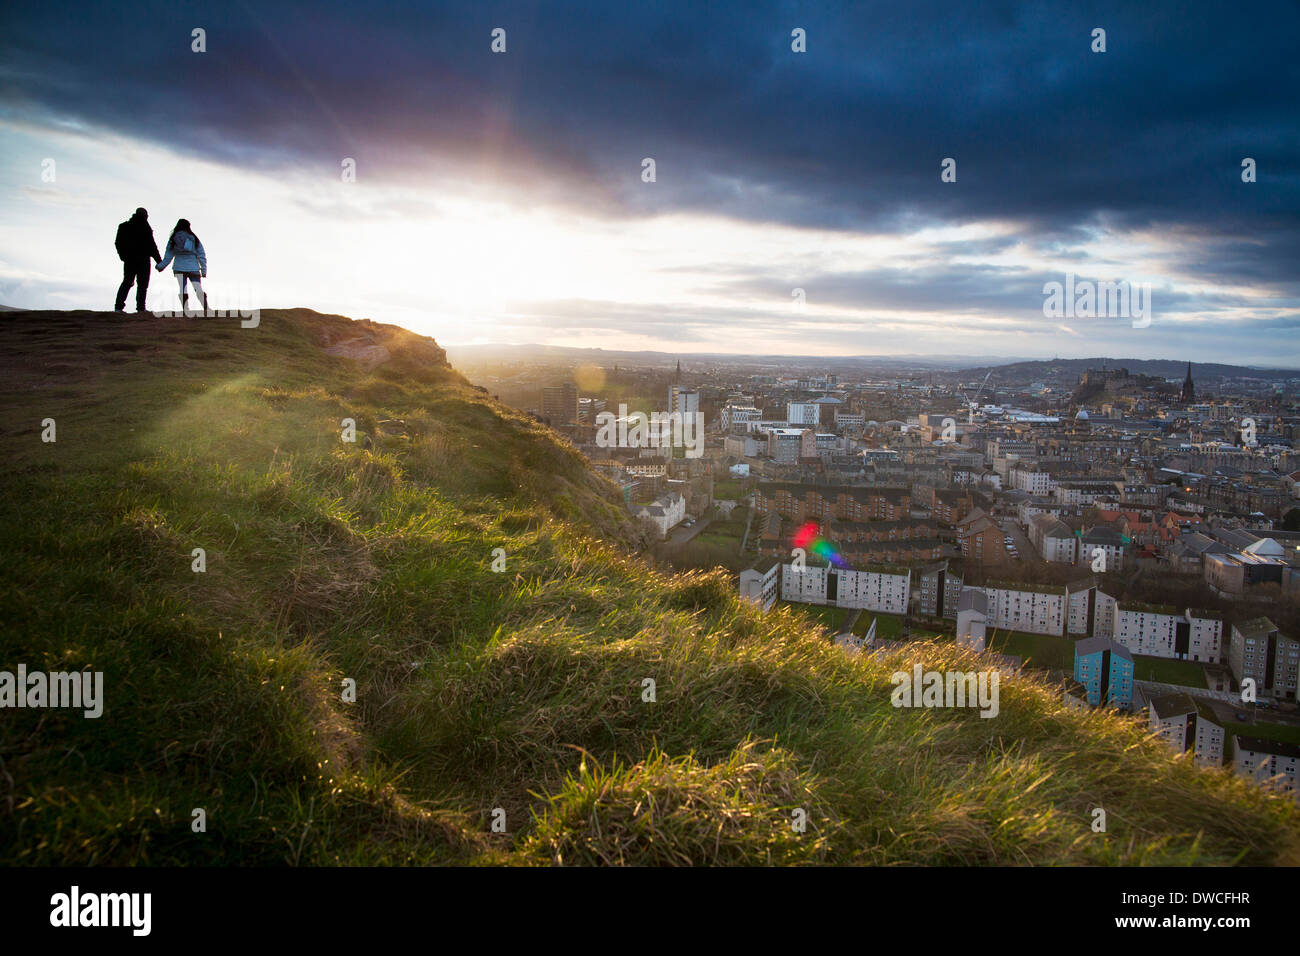 A young couple hold hands in front of the view of the City of Edinburgh from Salisbury Crags - Stock Image